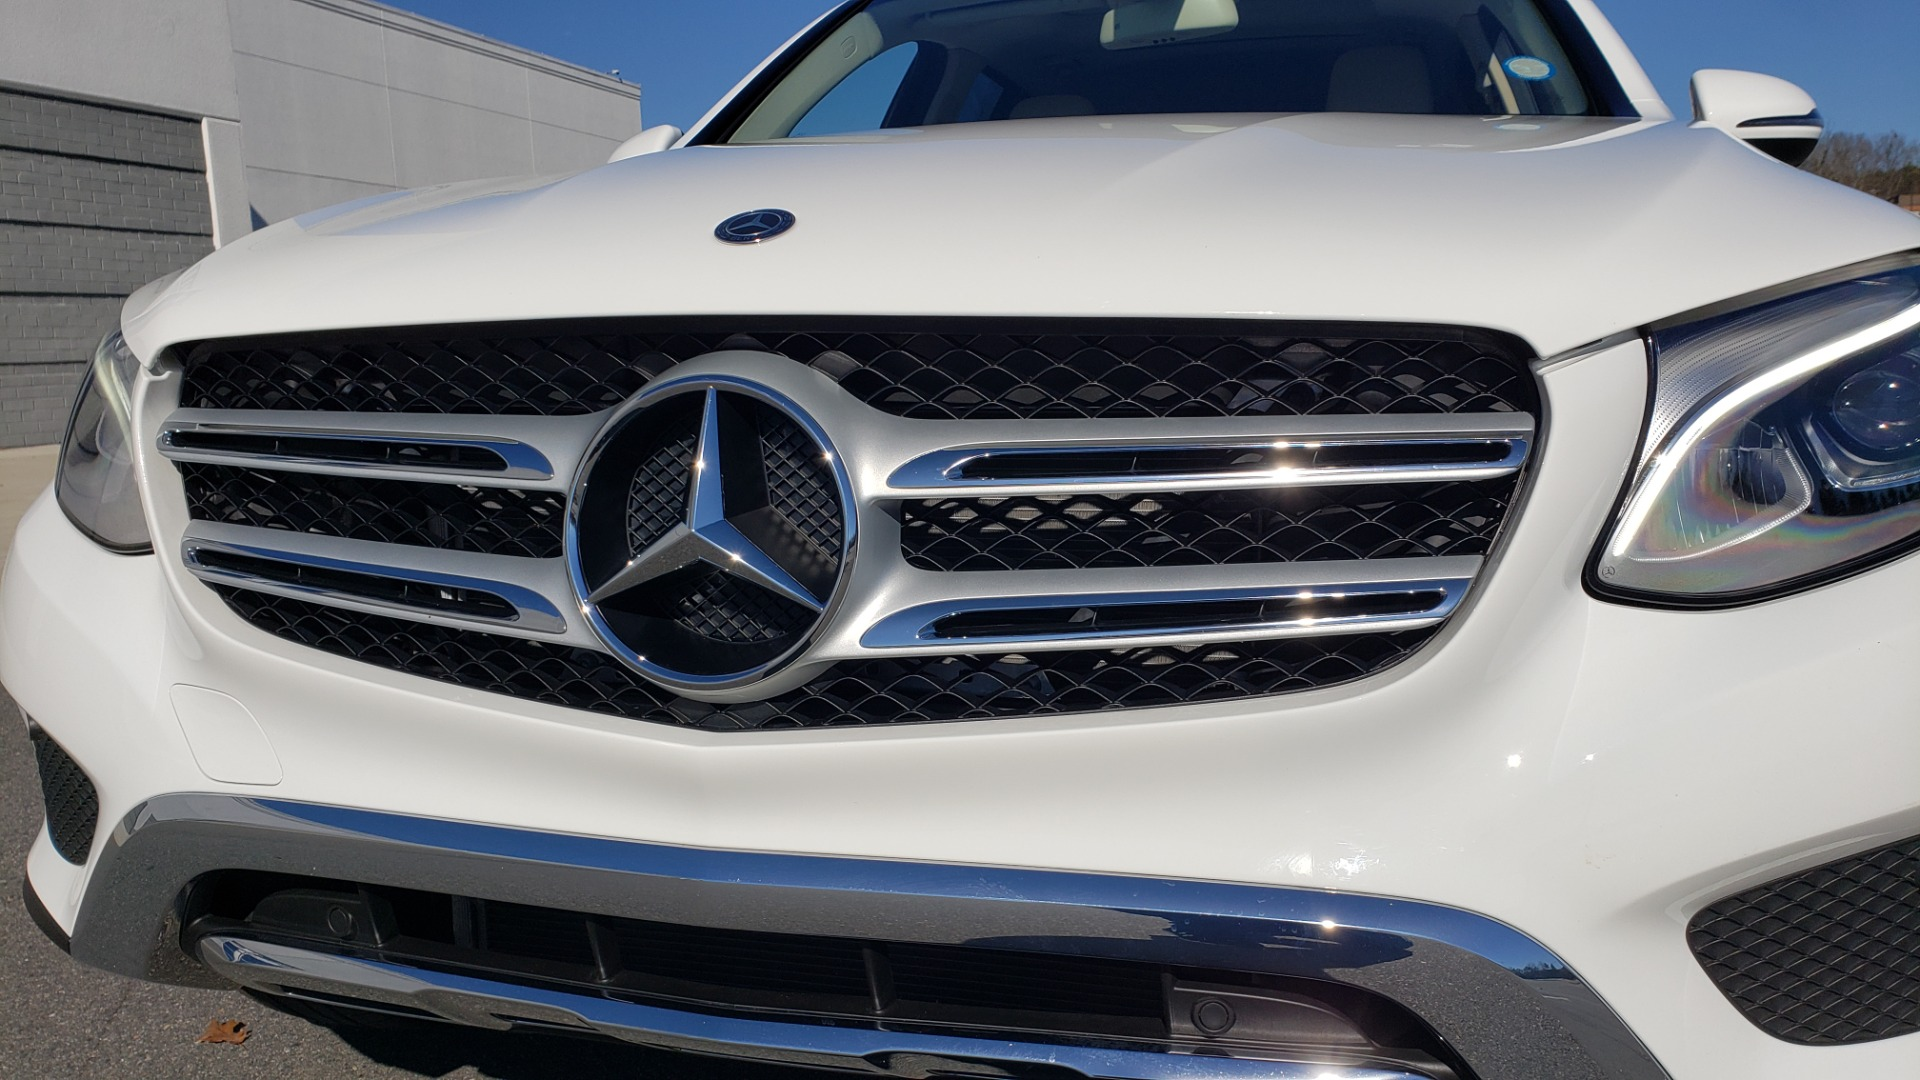 Used 2018 Mercedes-Benz GLC 300 4MATIC / PREM PKG / NAV / SUNROOF / REARVIEW for sale $36,995 at Formula Imports in Charlotte NC 28227 27